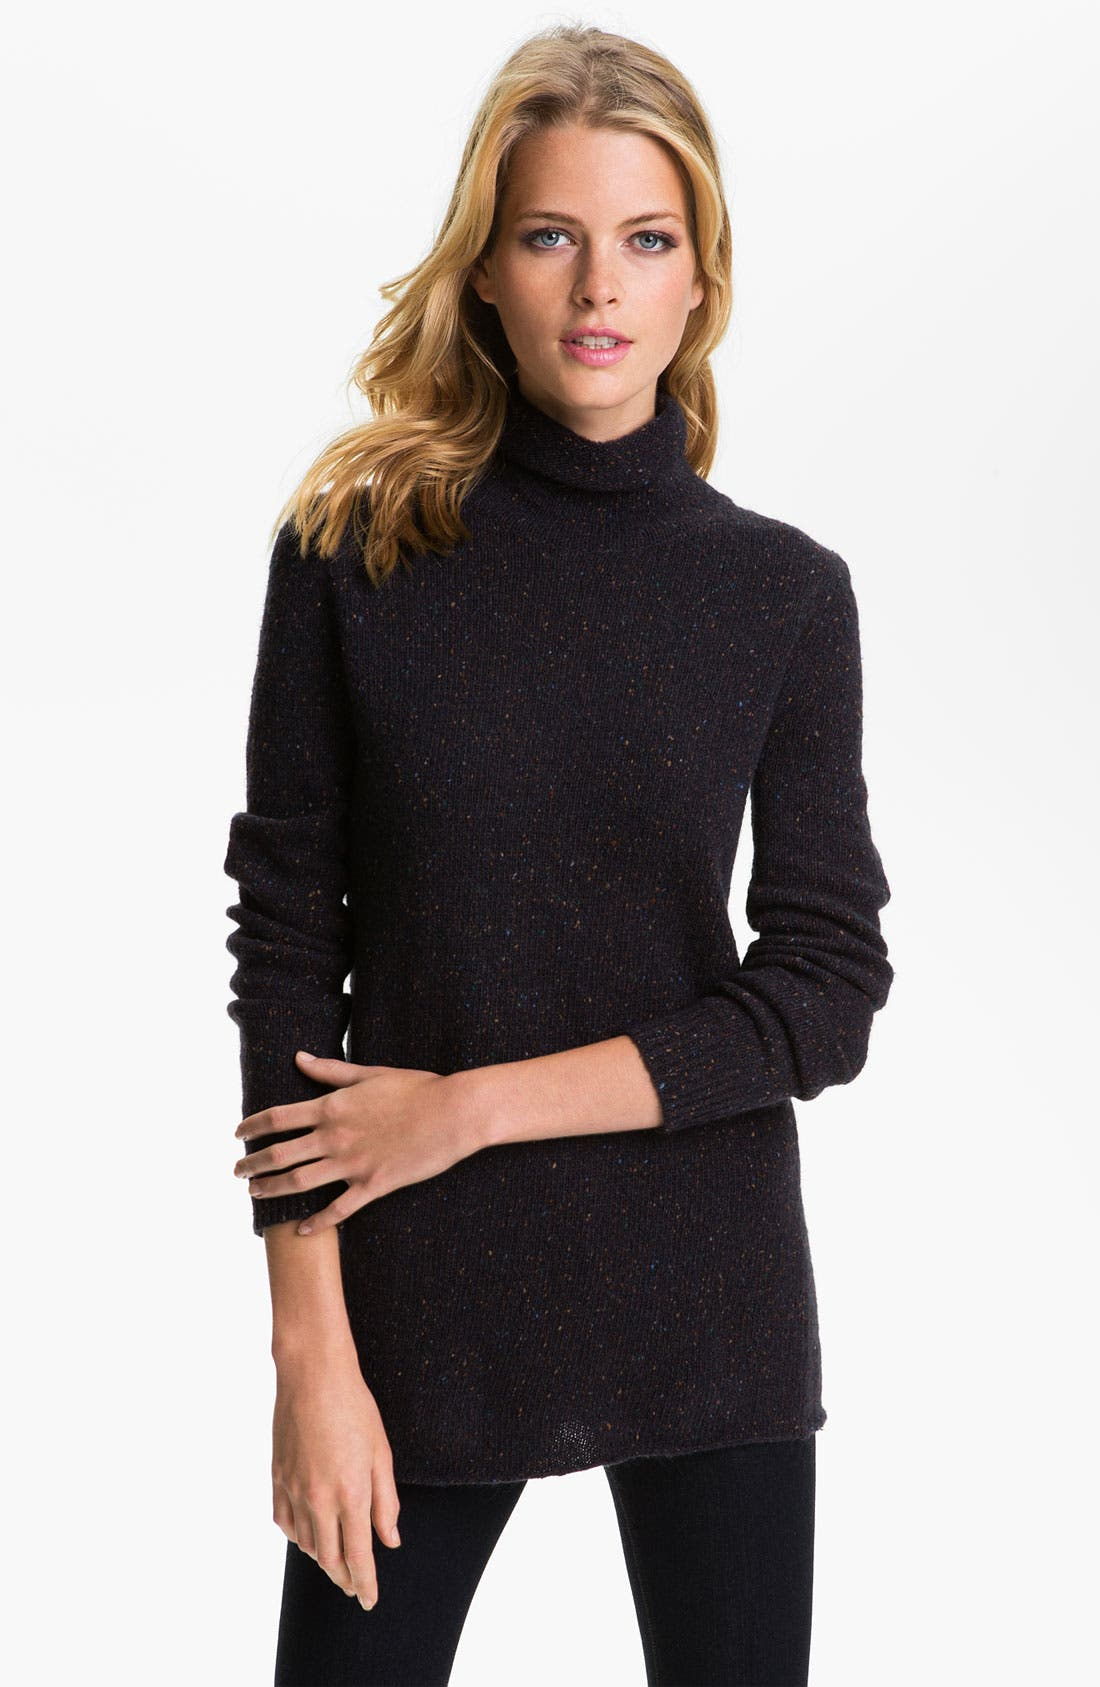 Alternate Image 1 Selected - Theory 'Neroli' Sweater (Online Exclusive)